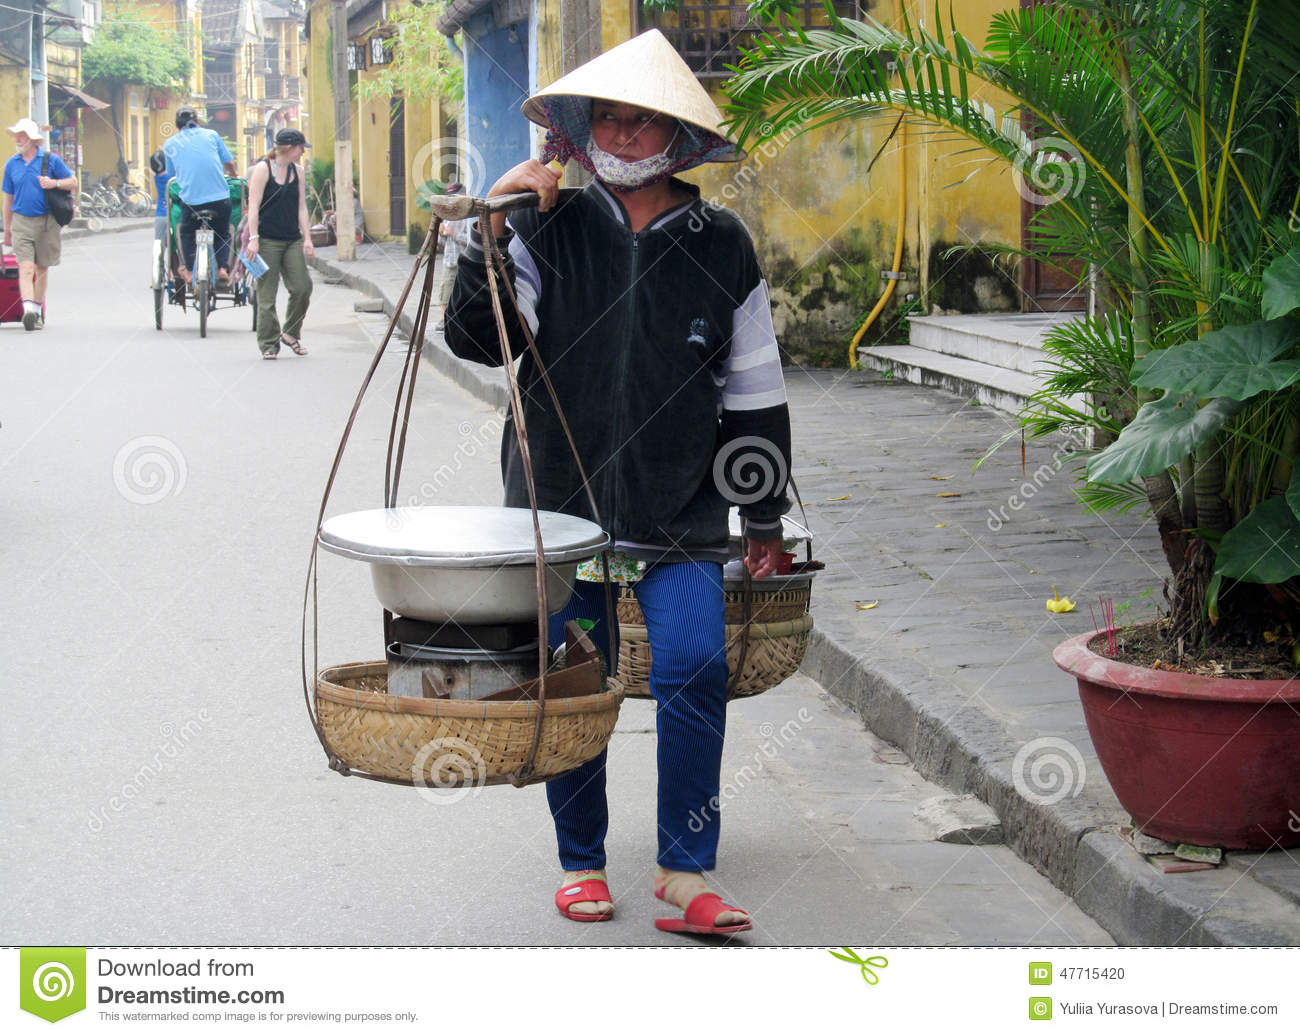 ca57c2b9e6d Women wearing traditional asian hats made of straw or palm leaves cones and  bandages on face. On the streets of the city are working in Vietnam